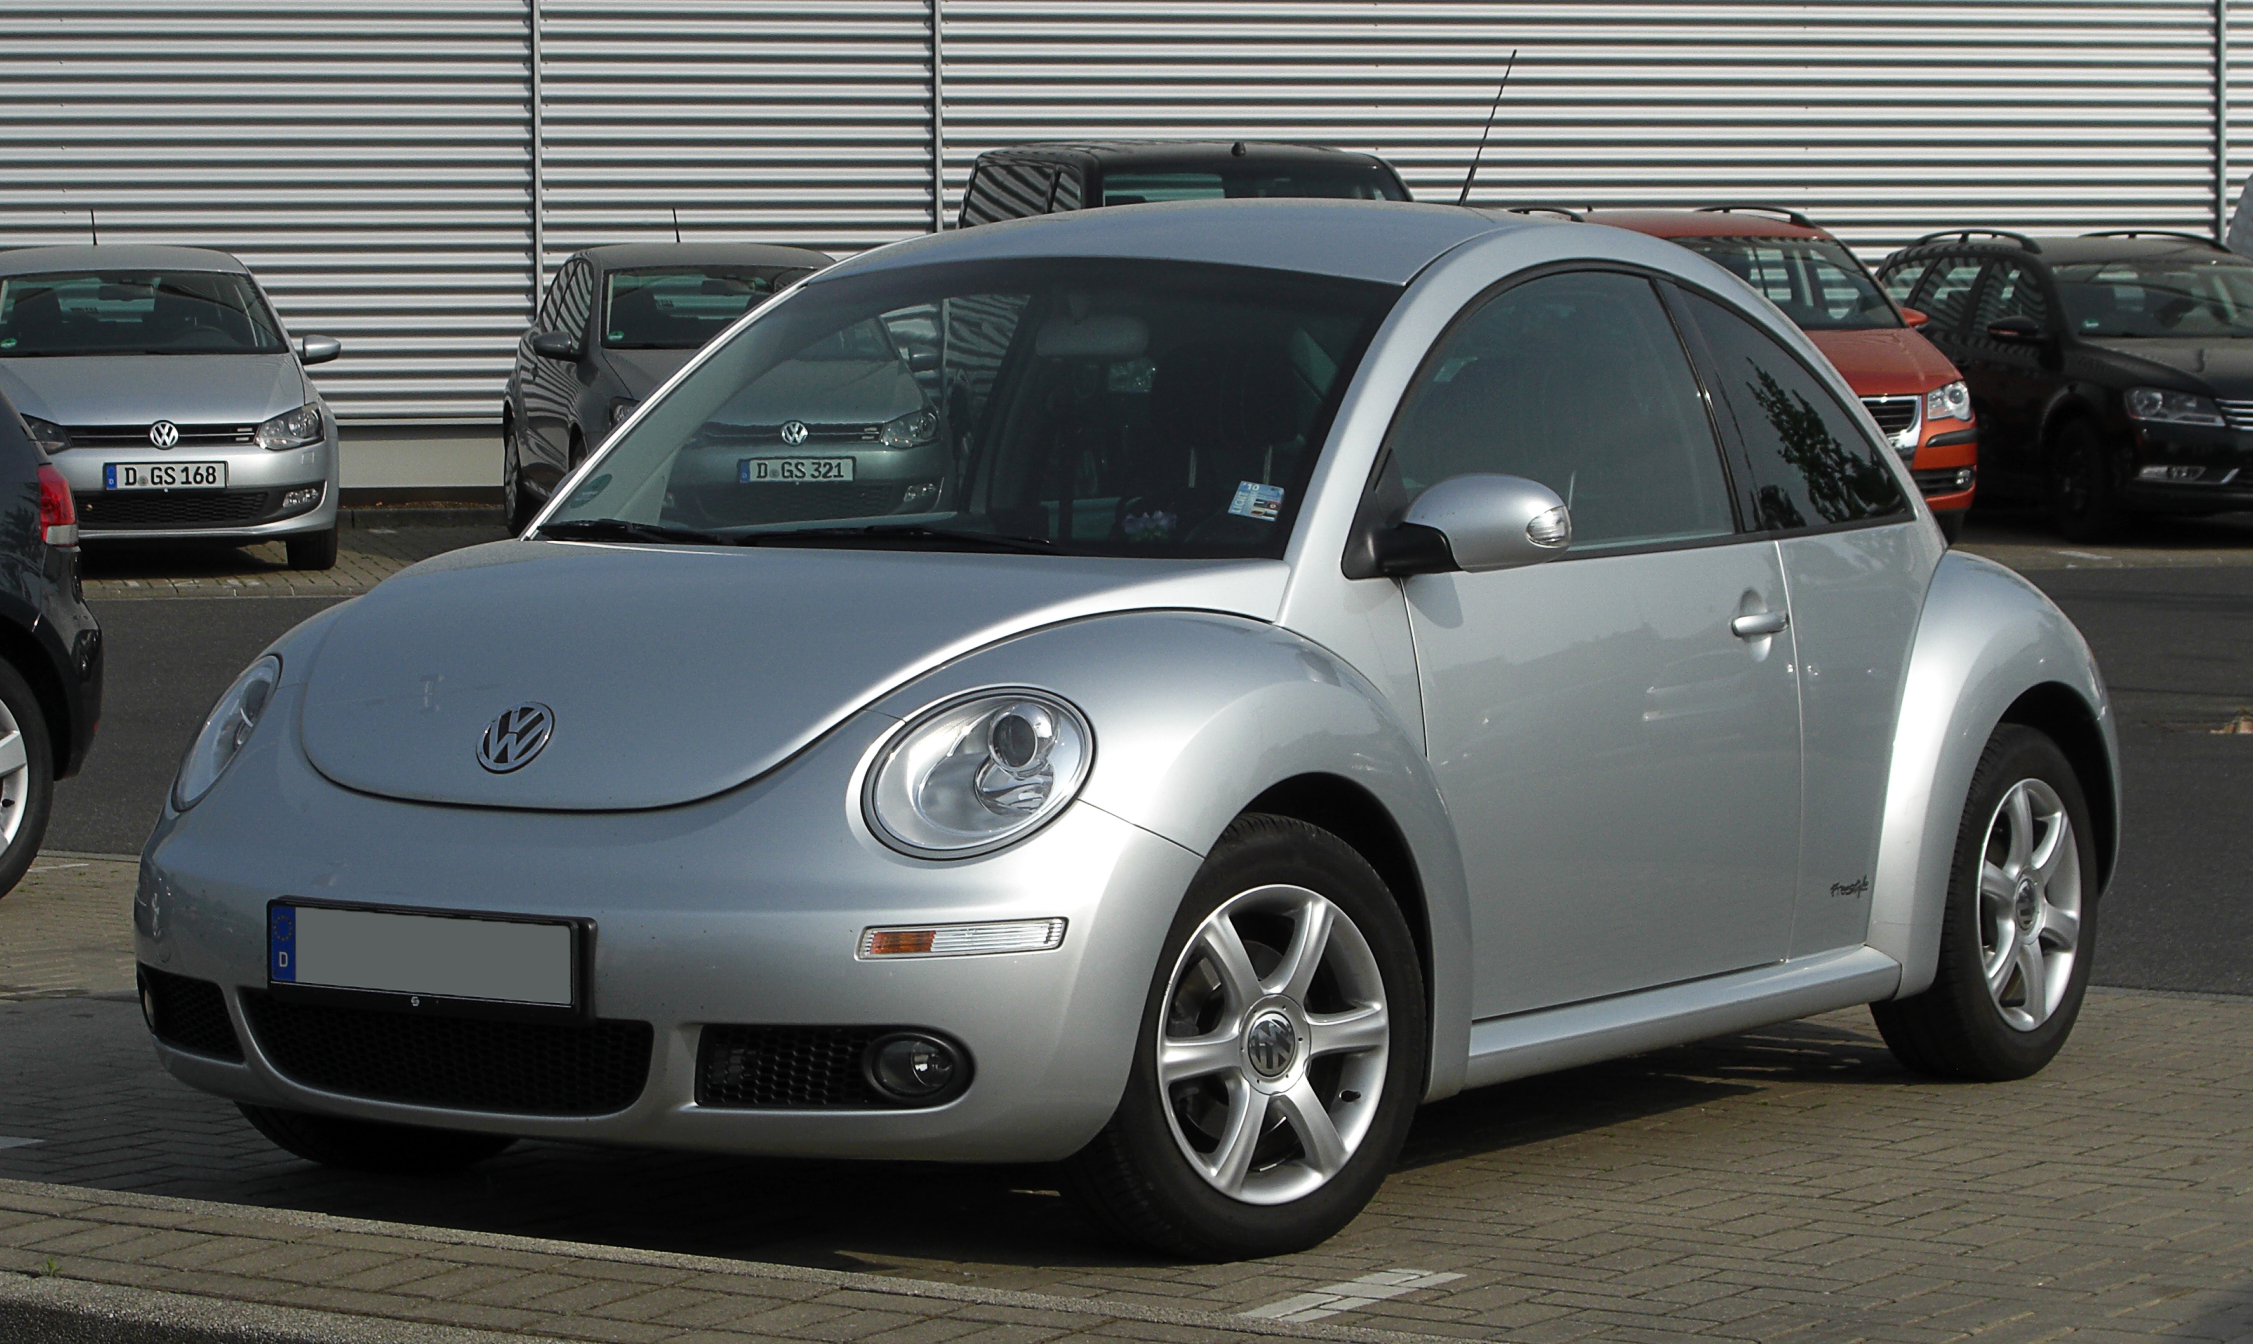 FileVW New Beetle Freestyle 2 Facelift  Frontansicht 7 Mai